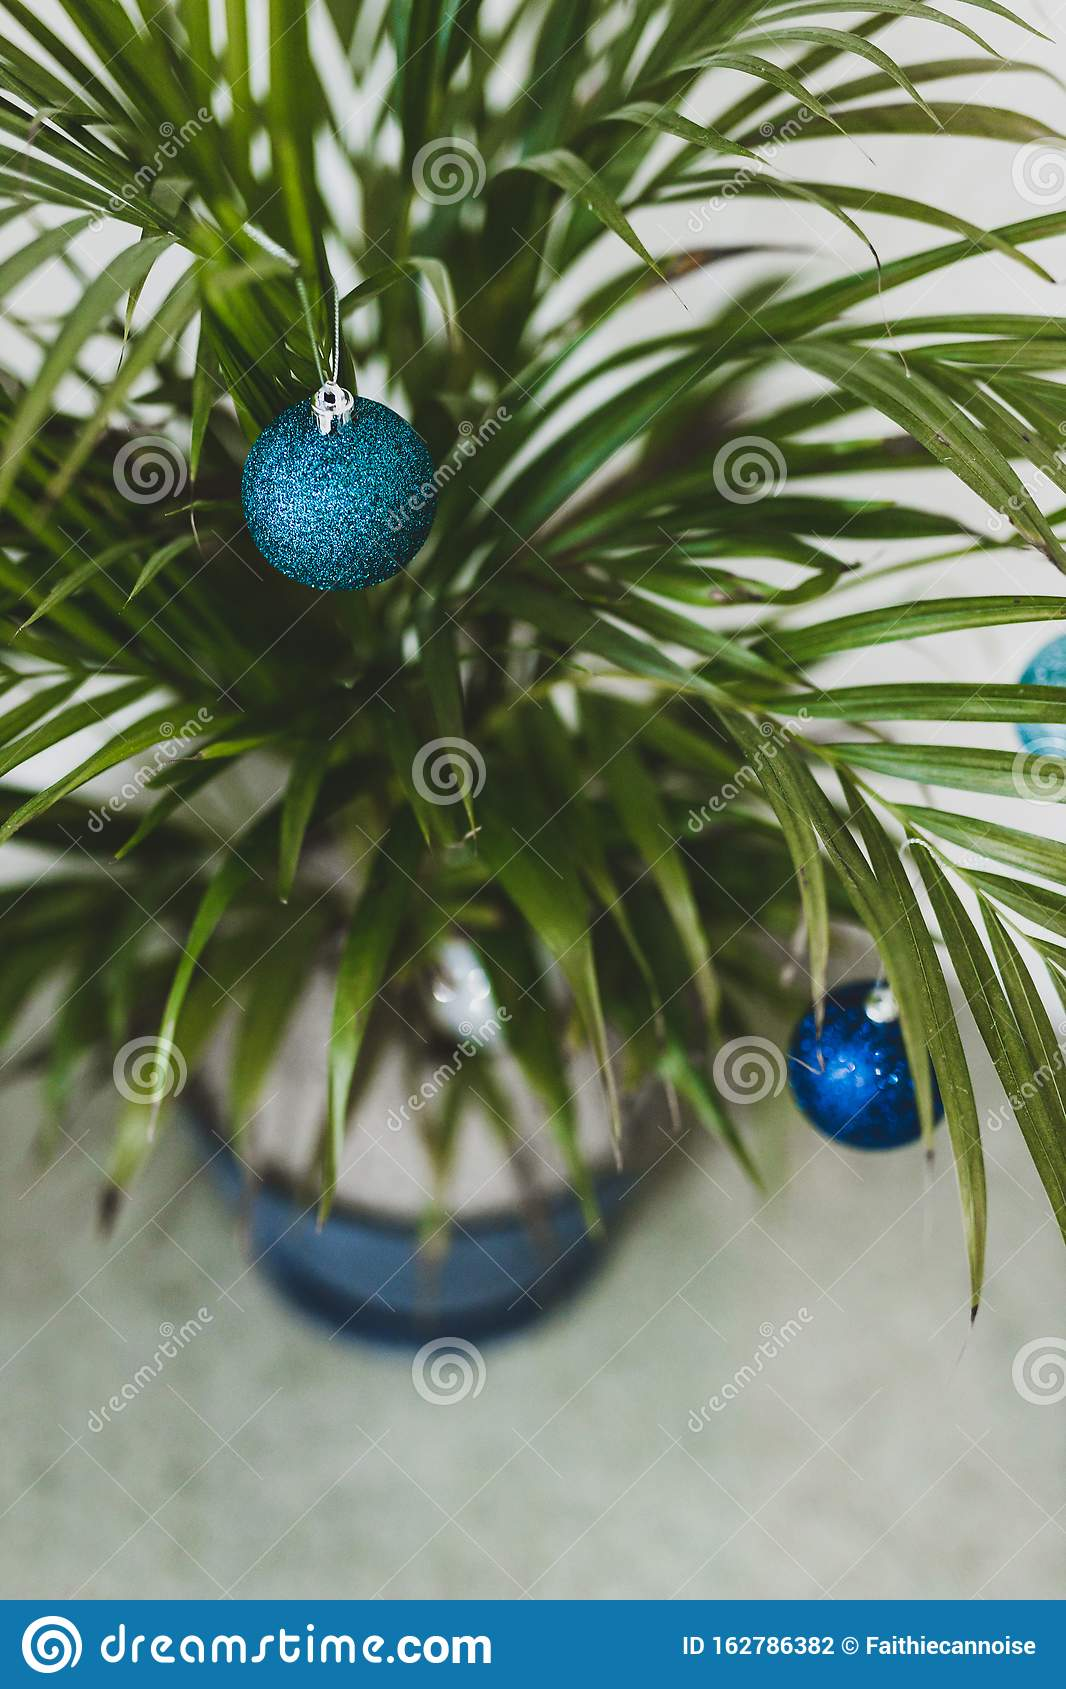 Alternative Christmas Tree Palm Plant With Christmas Baubles For The Festive Season In Summer For The Southern Hemisphere Stock Photo Image Of Tree Light 162786382